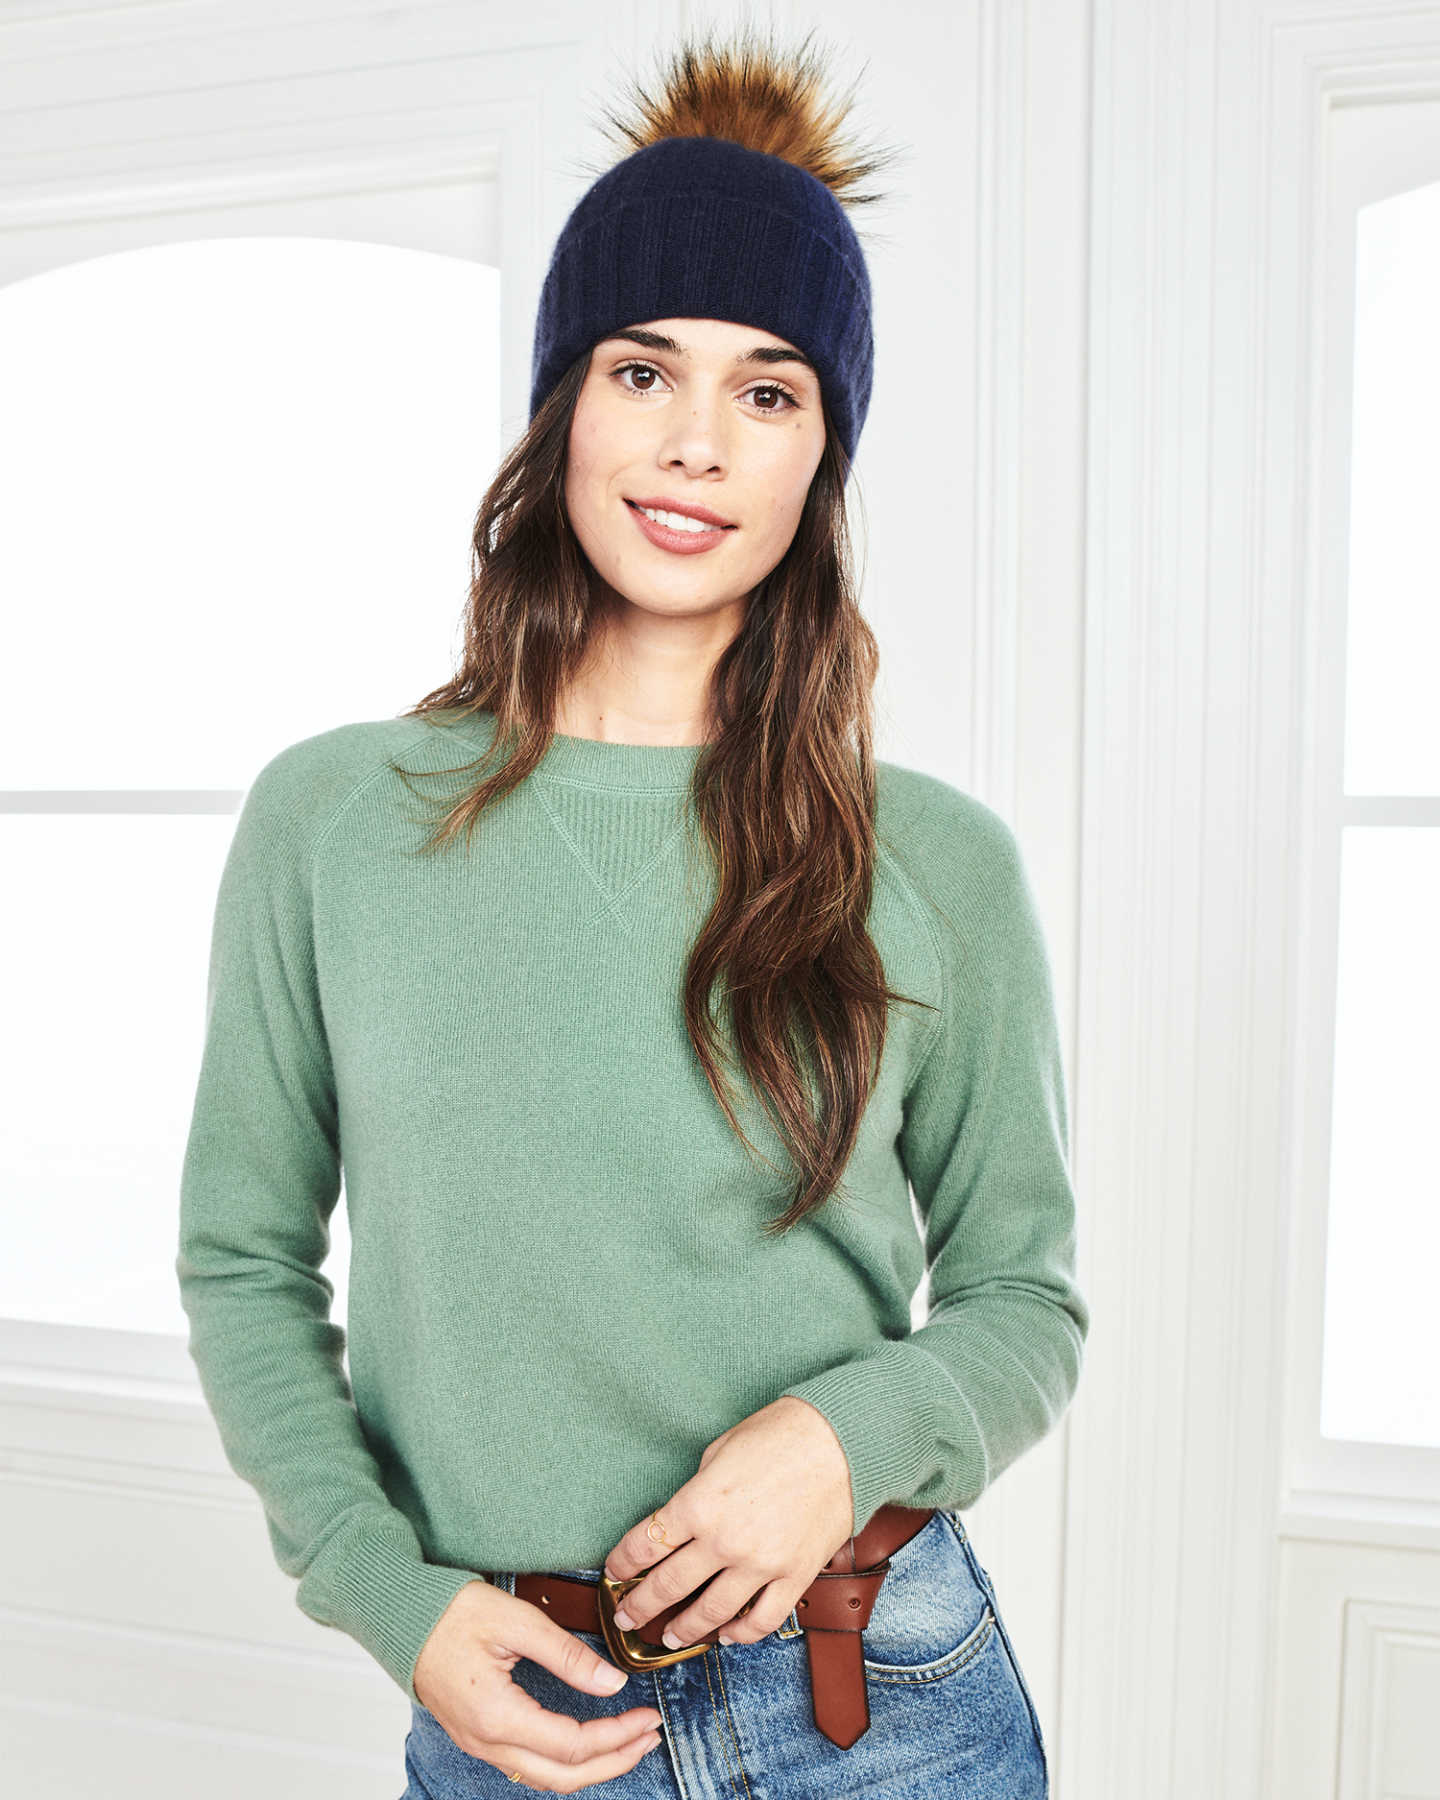 Woman wearing a womens beanie with pom in navy and matching cashmere sweatshirt in green